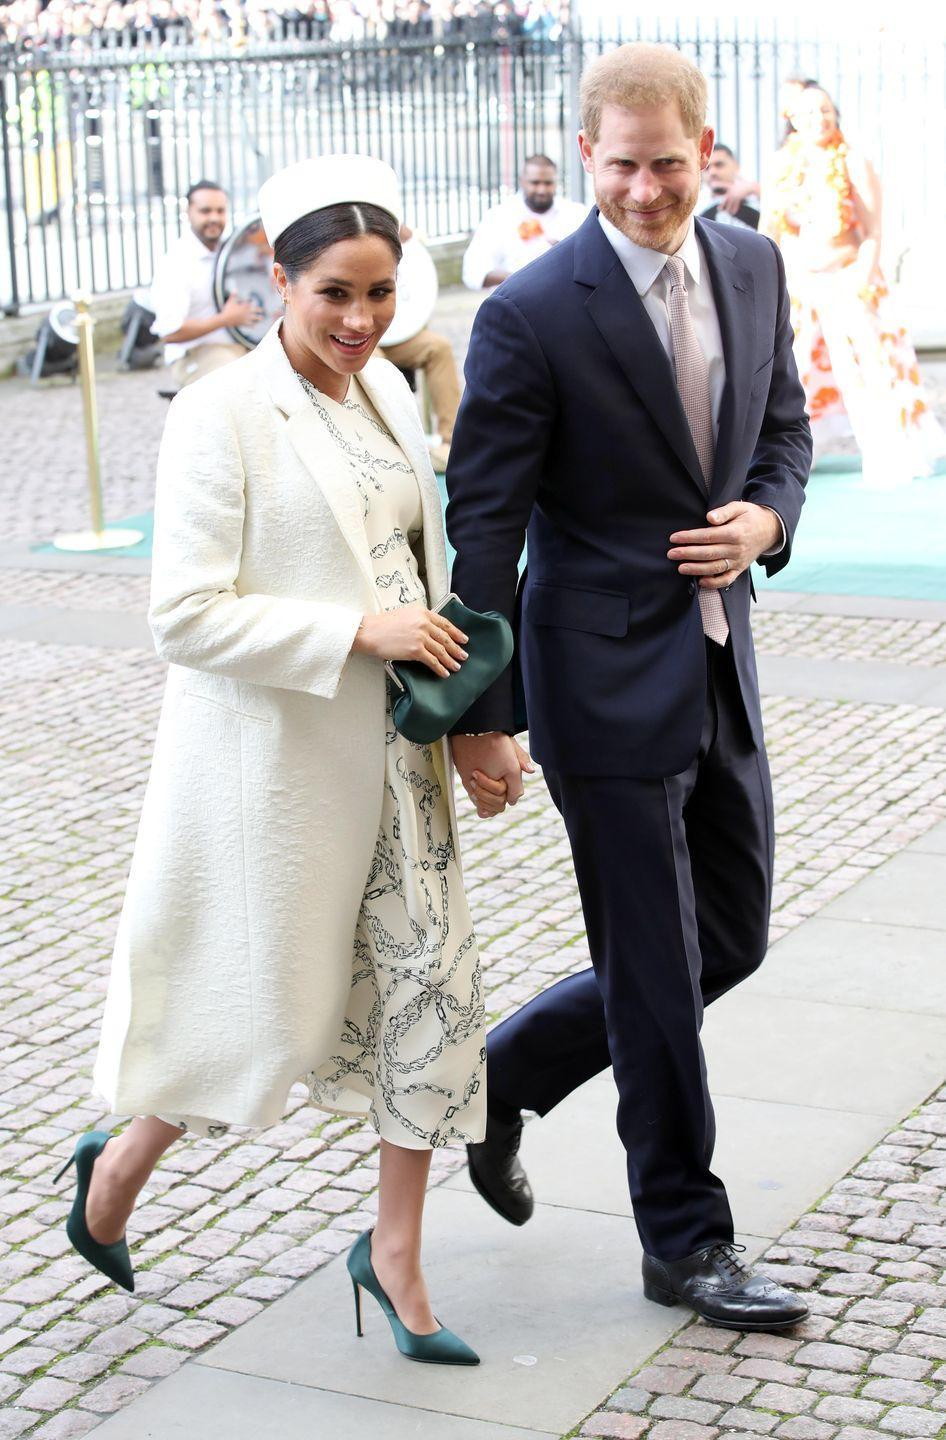 "<p>Meghan Markle arrived at the Commonwealth Day service at Westminster Abbey wearing a white coat and <a href=""https://www.modaoperandi.com/victoria-beckham-fw19/chain-link-print-cady-dress?"" rel=""nofollow noopener"" target=""_blank"" data-ylk=""slk:printed dress by Victoria Beckham"" class=""link rapid-noclick-resp"">printed dress by Victoria Beckham</a>. The Duchess topped off her look with a white pill-box hat, a dark green satin clutch and pumps. </p><p><a class=""link rapid-noclick-resp"" href=""https://go.redirectingat.com?id=74968X1596630&url=https%3A%2F%2Fwww.modaoperandi.com%2Fvictoria-beckham-fw19%2Fchain-link-print-cady-dress&sref=https%3A%2F%2Fwww.townandcountrymag.com%2Fstyle%2Ffashion-trends%2Fg3272%2Fmeghan-markle-preppy-style%2F"" rel=""nofollow noopener"" target=""_blank"" data-ylk=""slk:Shop Now"">Shop Now</a> <em>Chain-Link Print Cady Dress, Victoria Beckham, $1,590</em></p>"